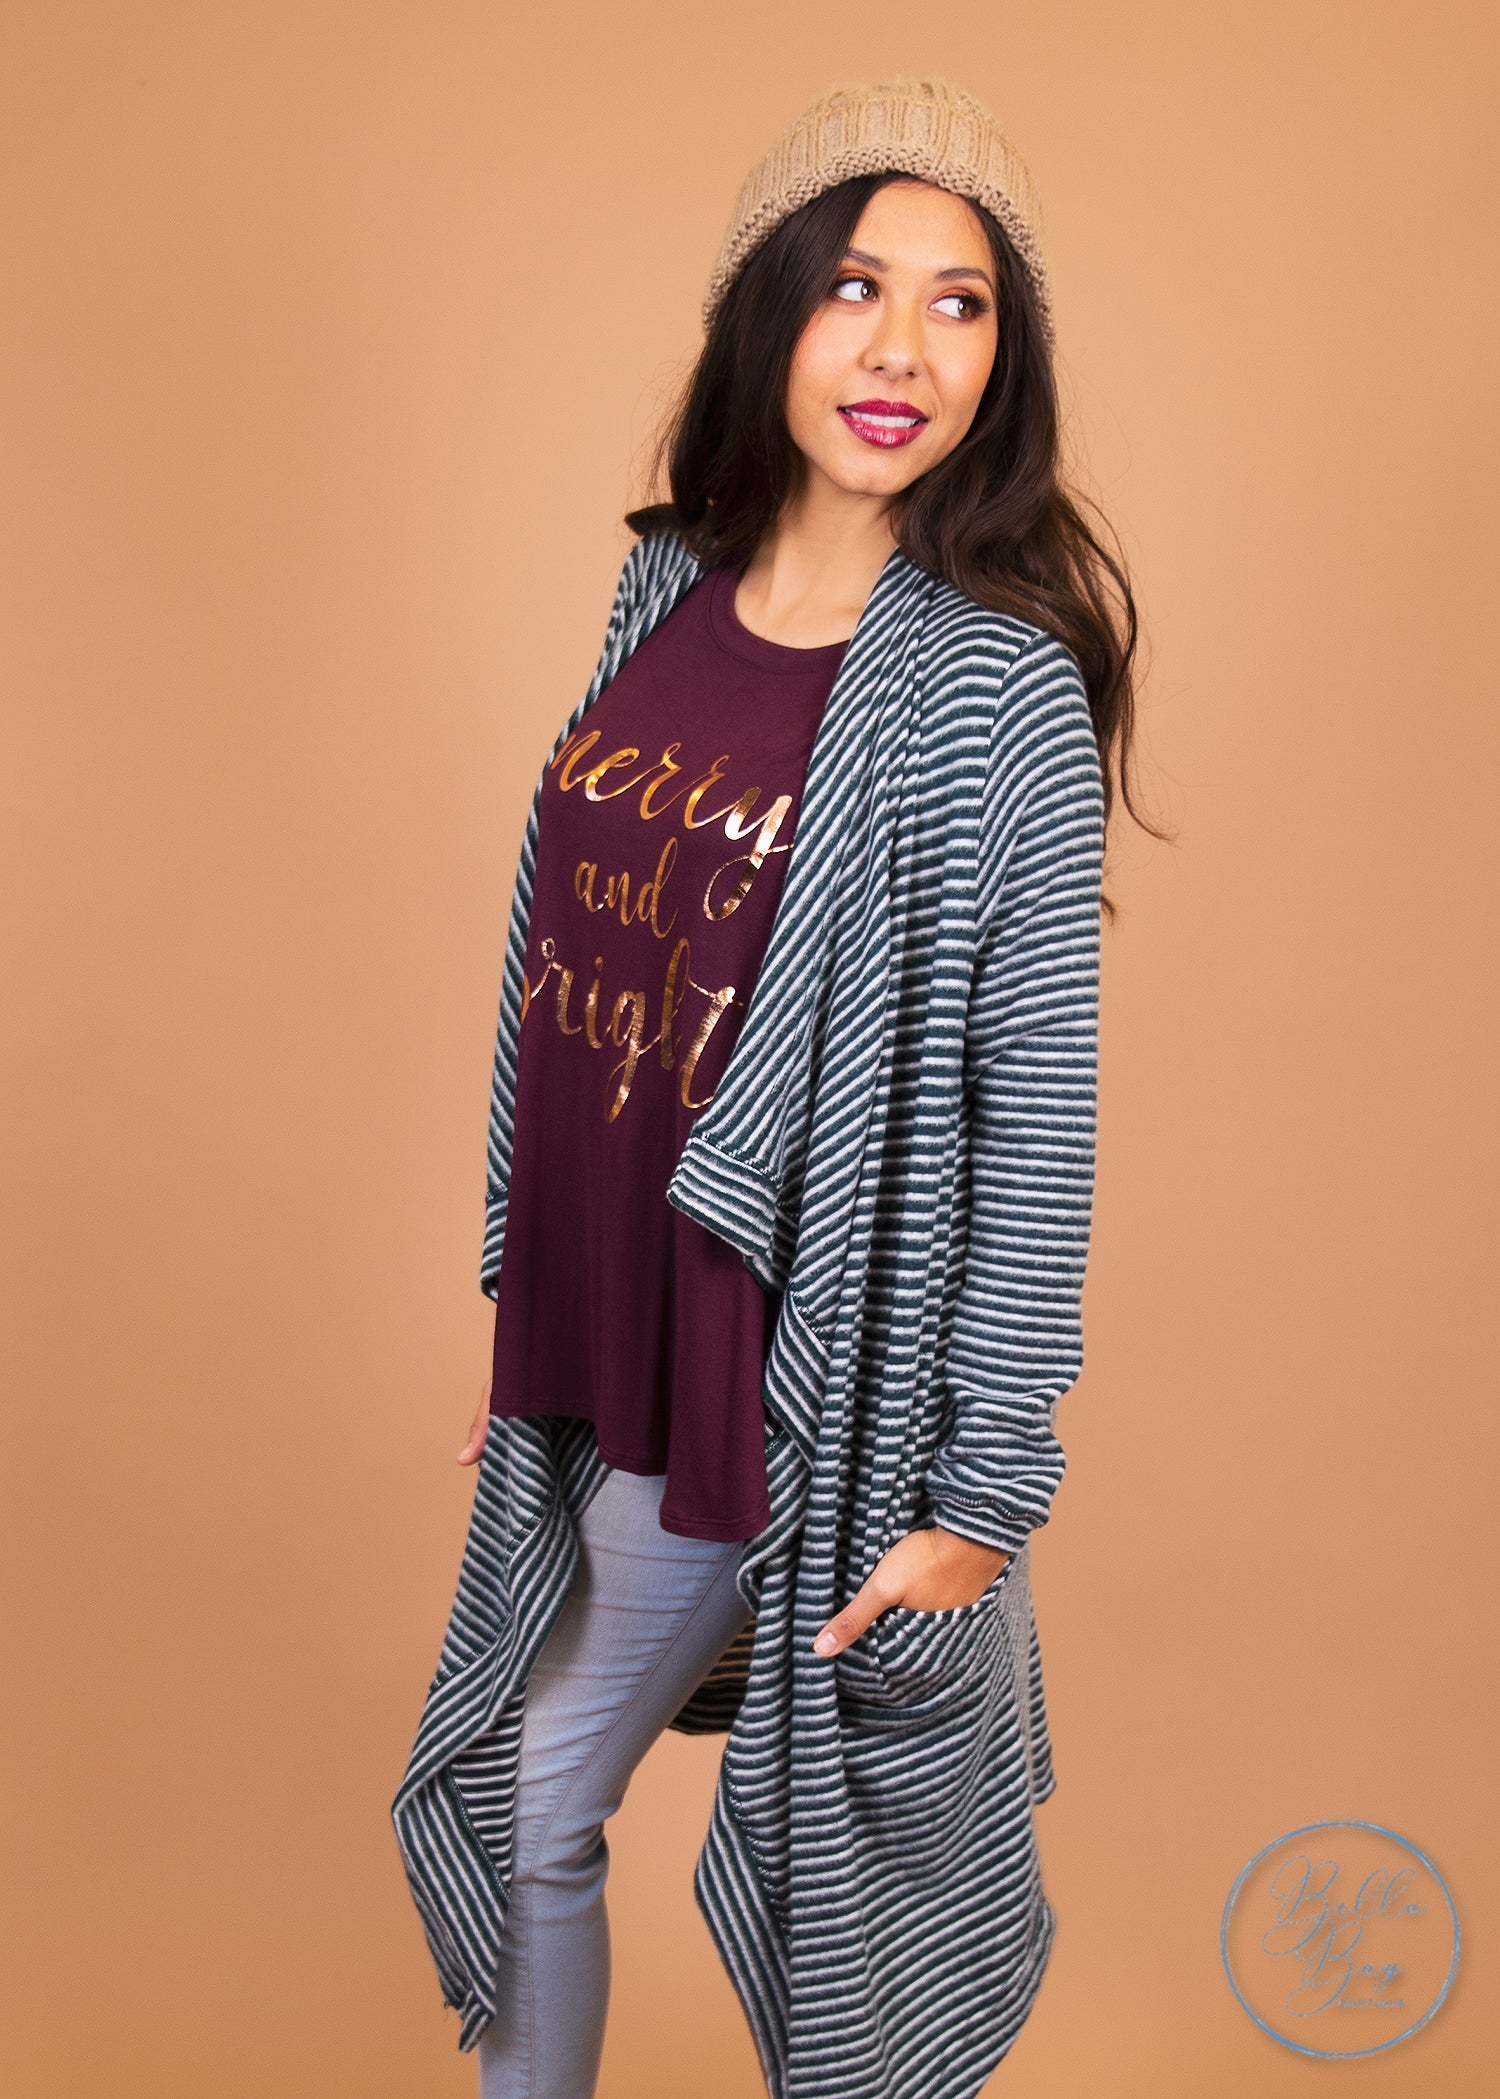 Paisley Raye Dusty Miller Cardigan- Teal and White Stripes (2X) - Paisley Raye with Bella Bay Boutique, shop now at  https://shopbellabay.com/ or locally in Newport Oregon